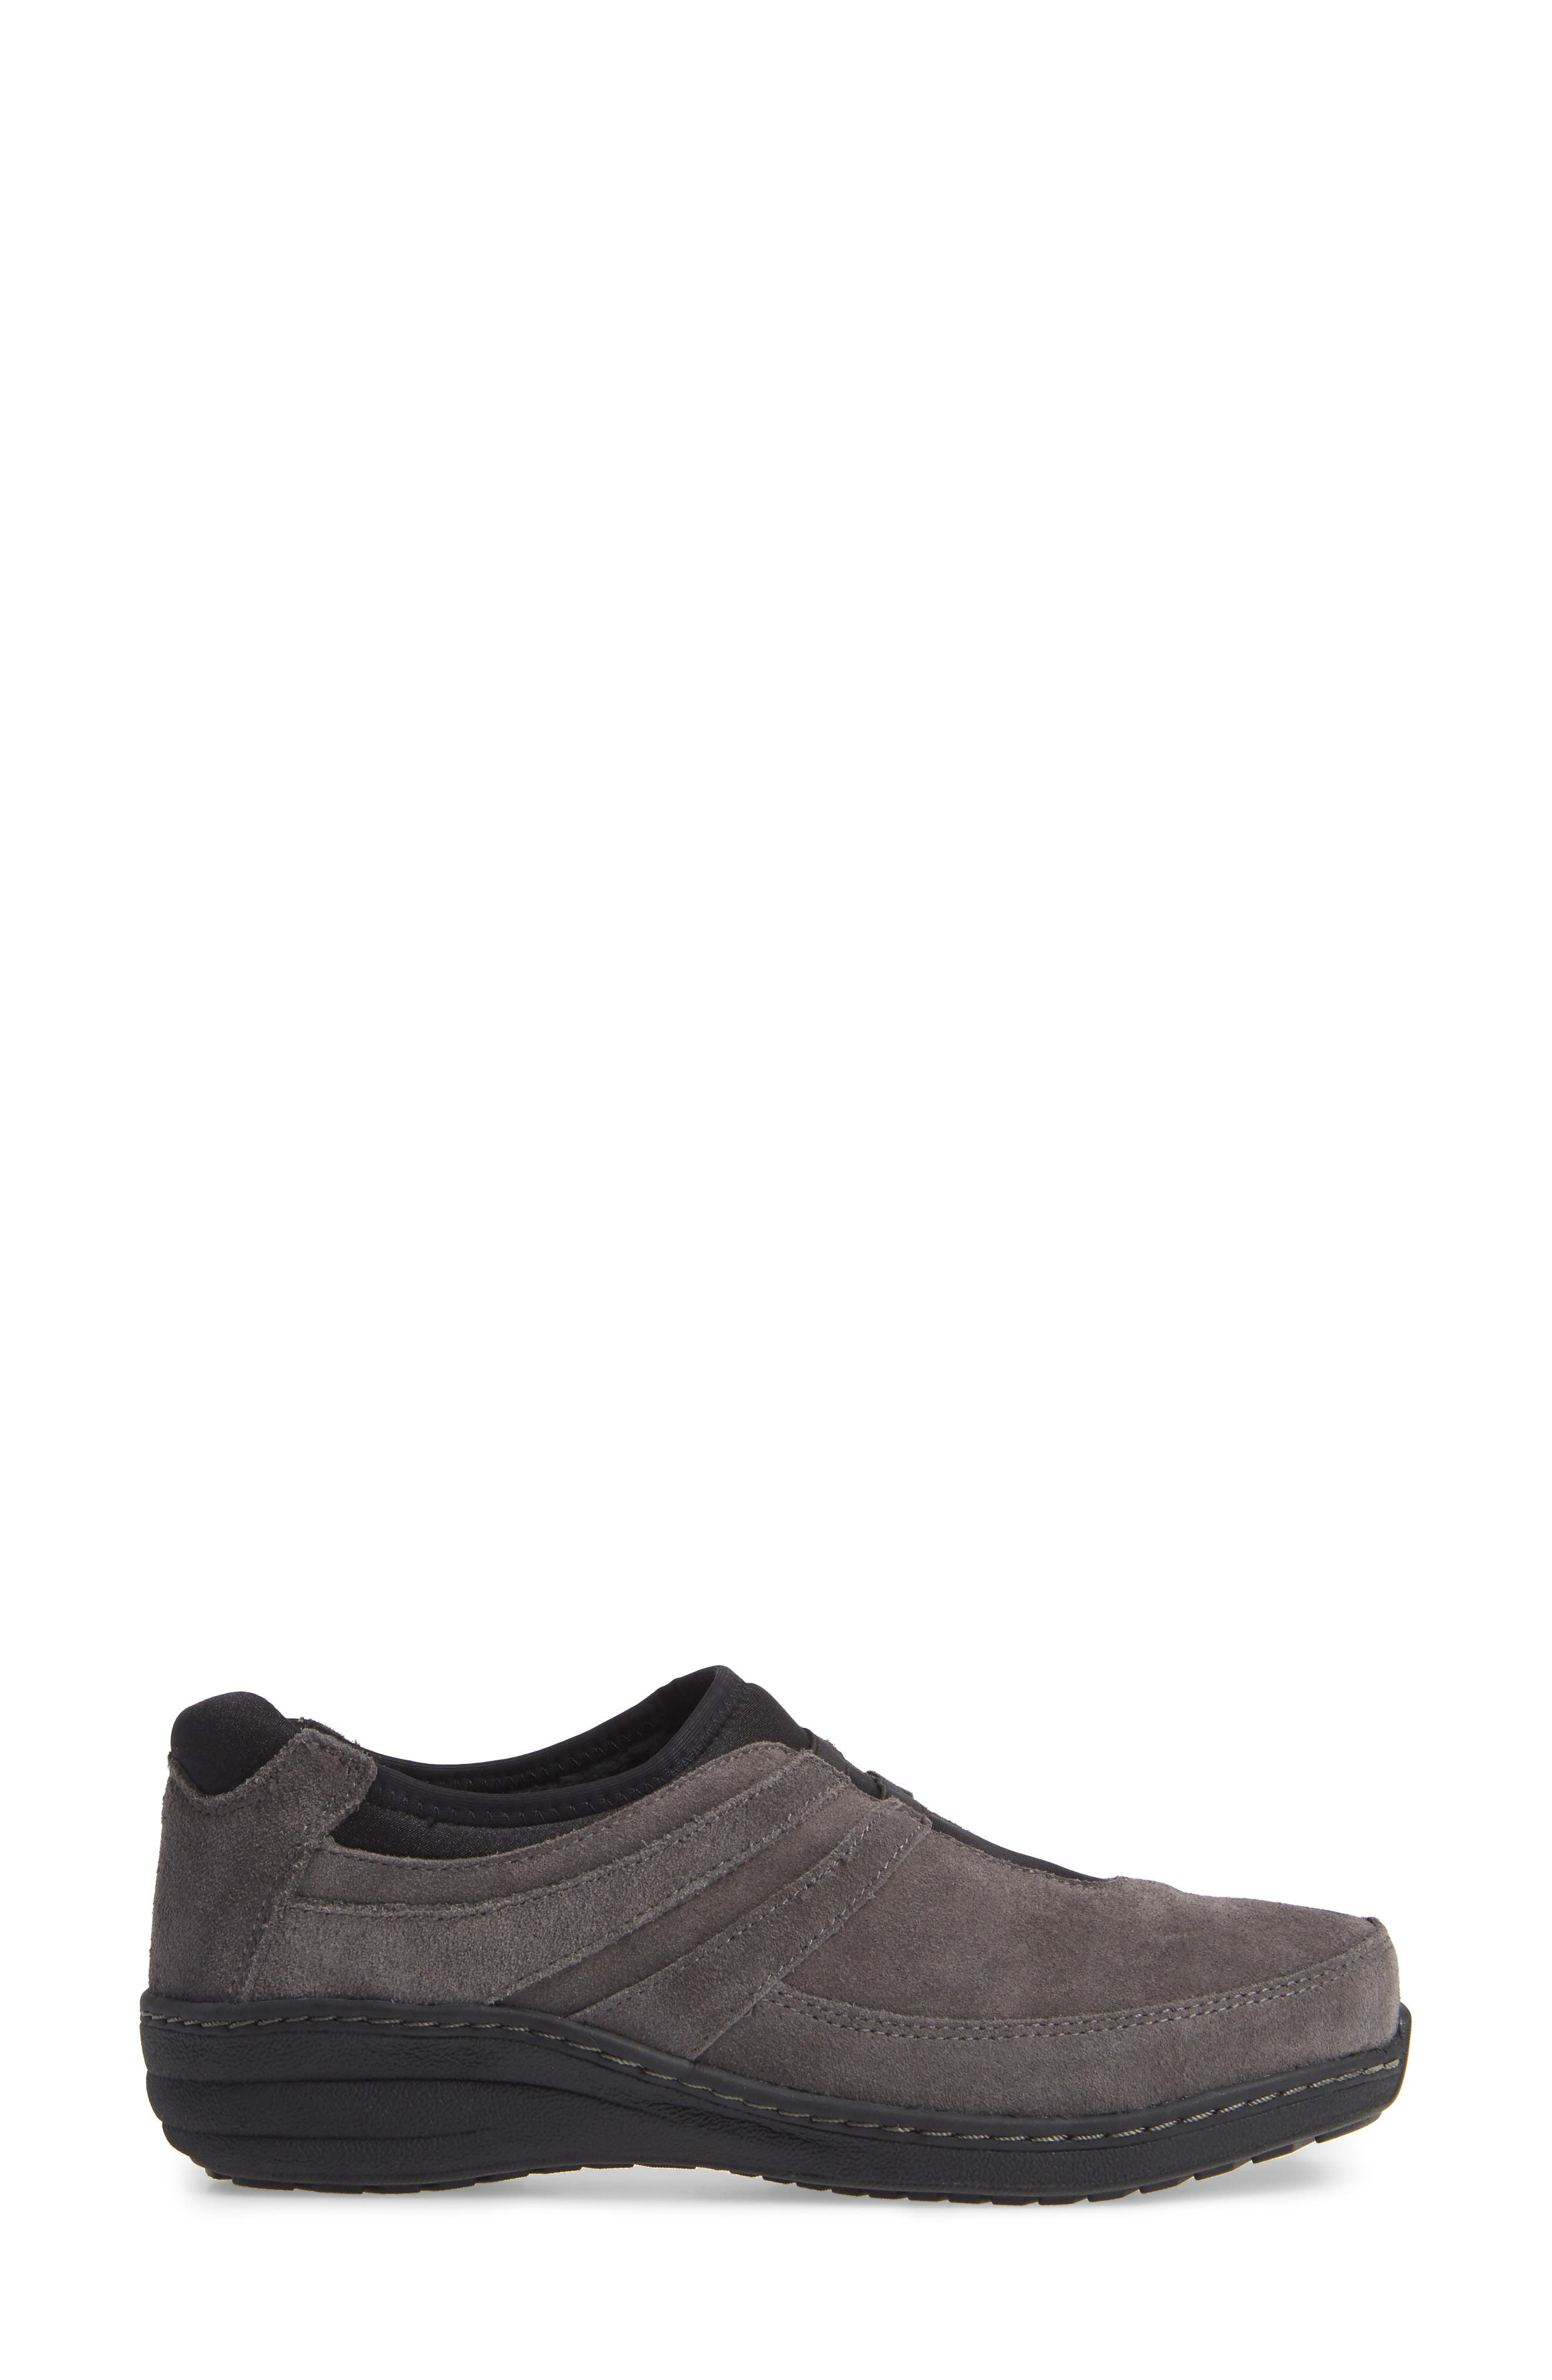 Berries Slip-On Sneaker,                             Alternate thumbnail 3, color,                             CHARCOAL FABRIC